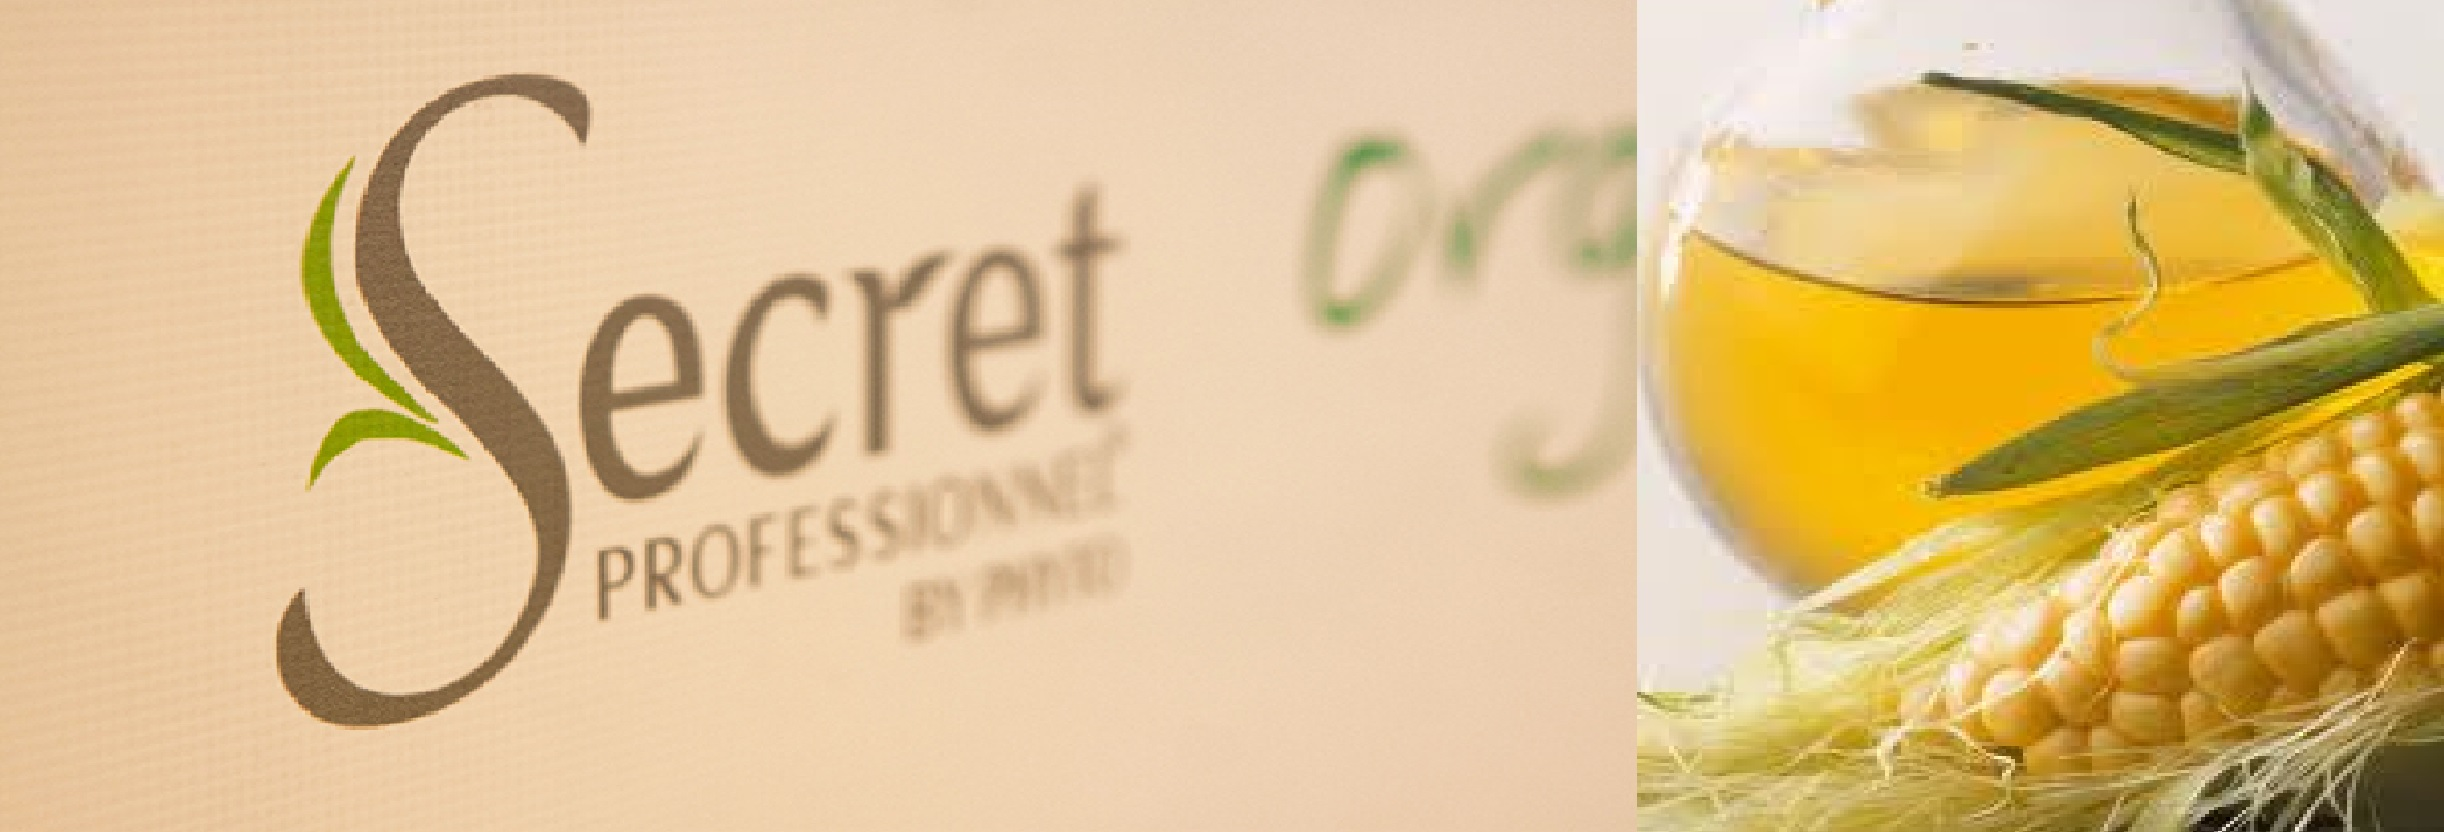 Secret Professionel by Phyto